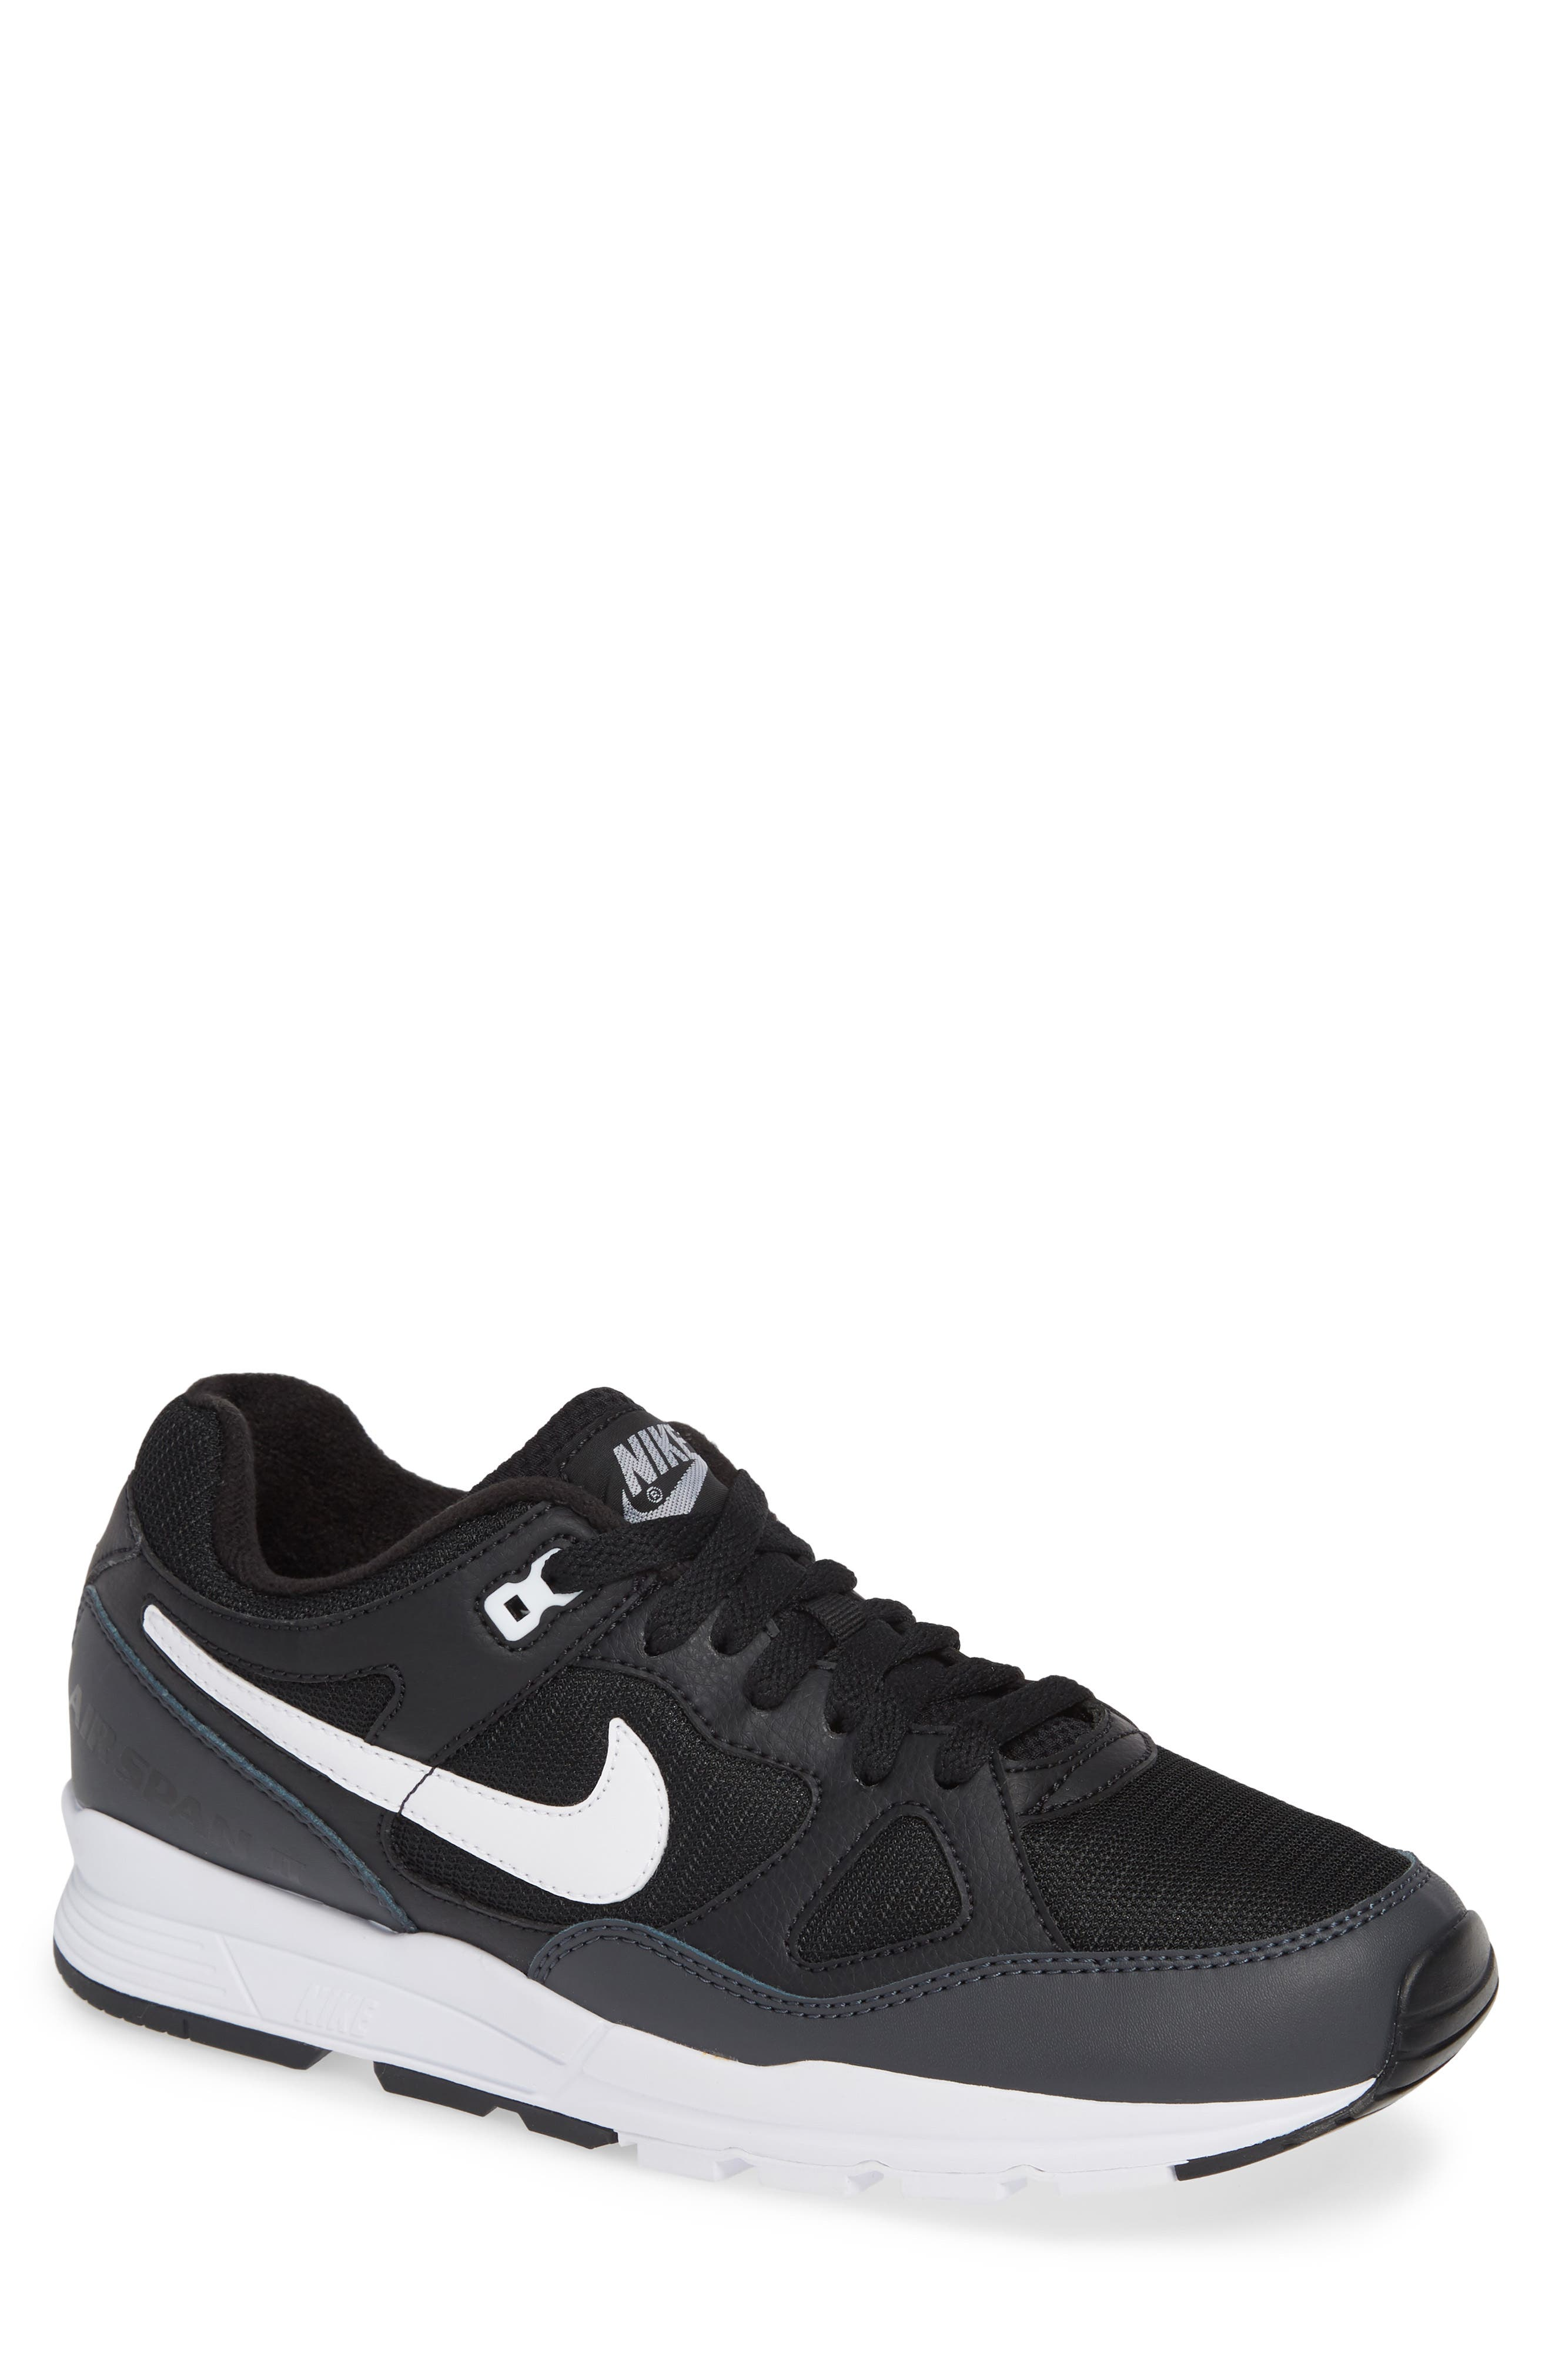 Air Span II Sneaker,                         Main,                         color, BLACK/ WHITE/ ANTHRACITE